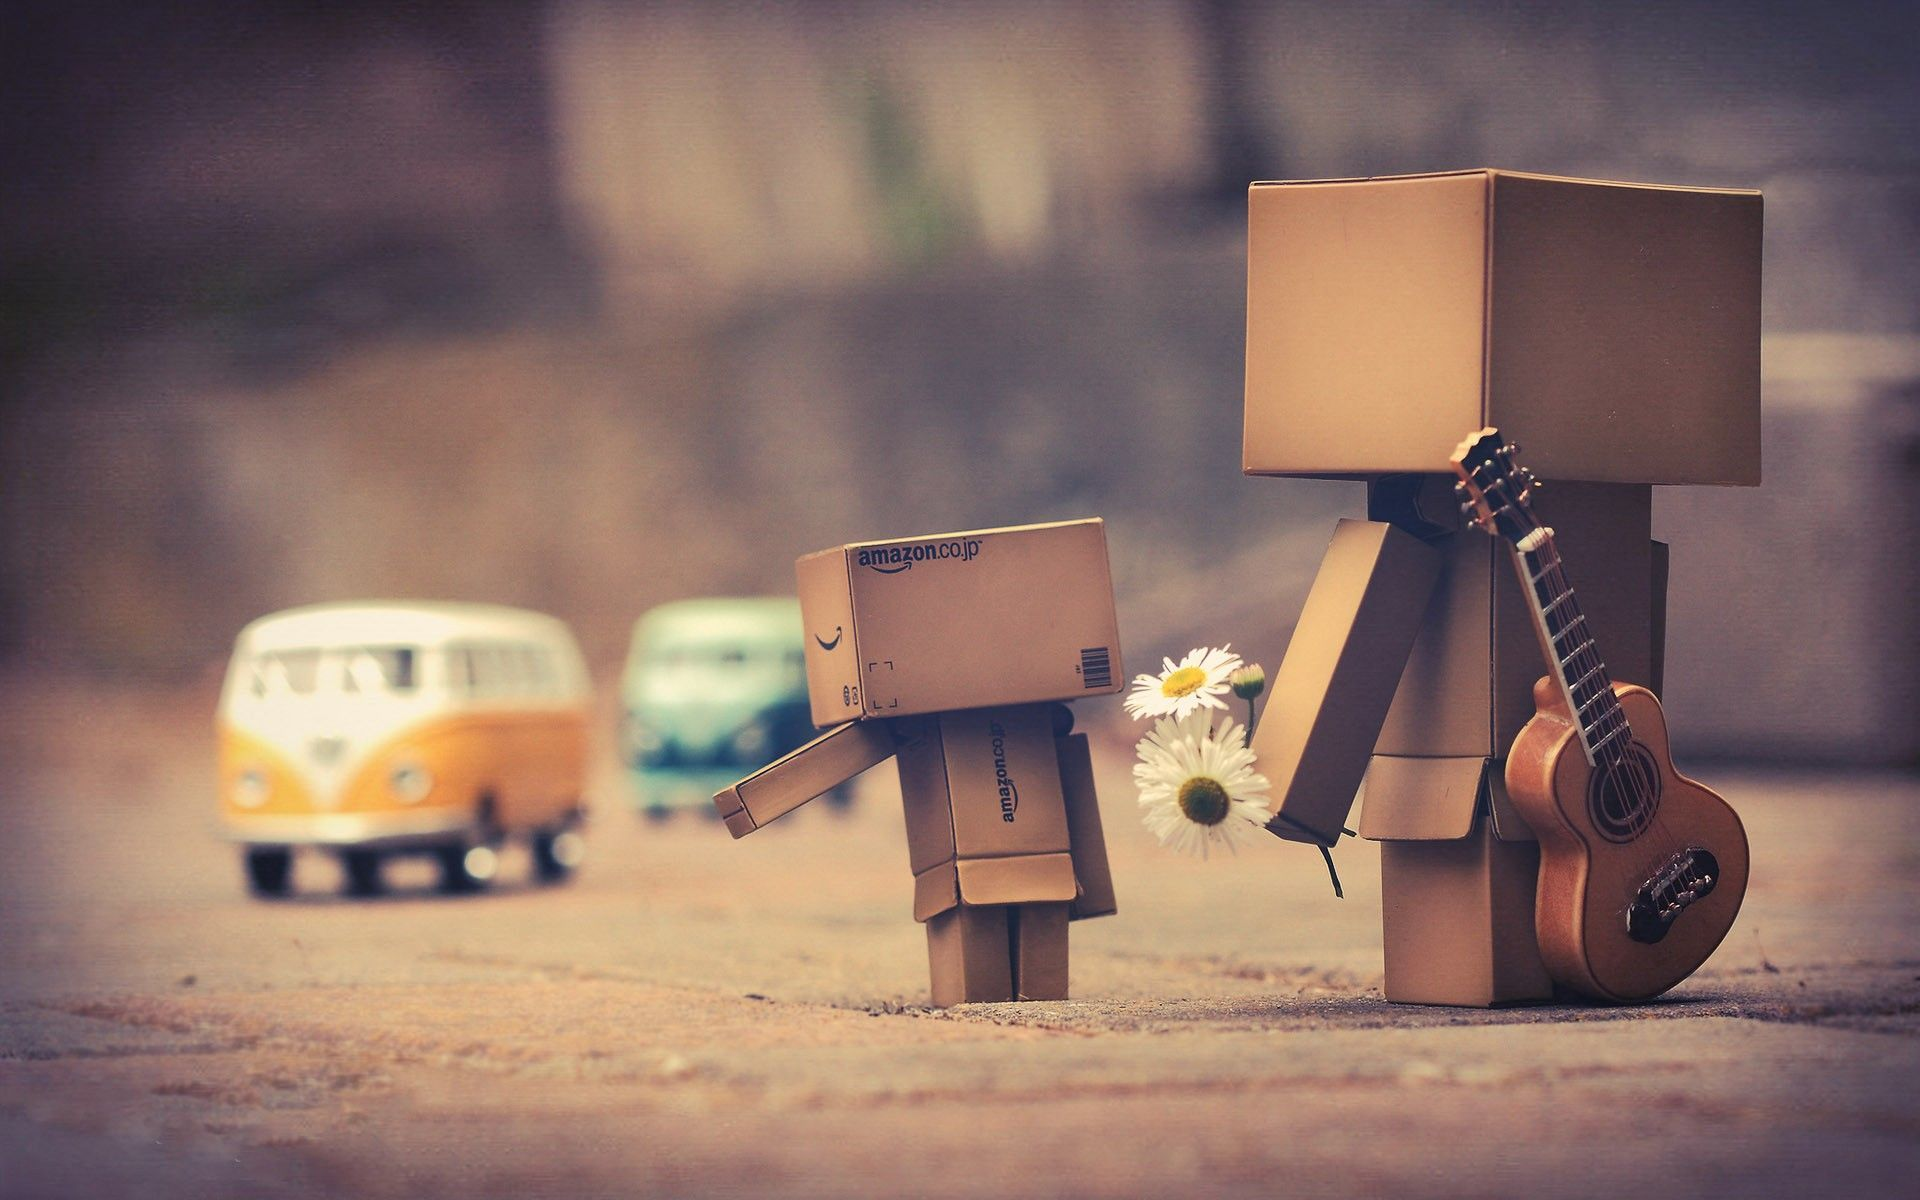 Danbo Wallpapers Danbo Amazon Box Hd Wallpaper Desktop